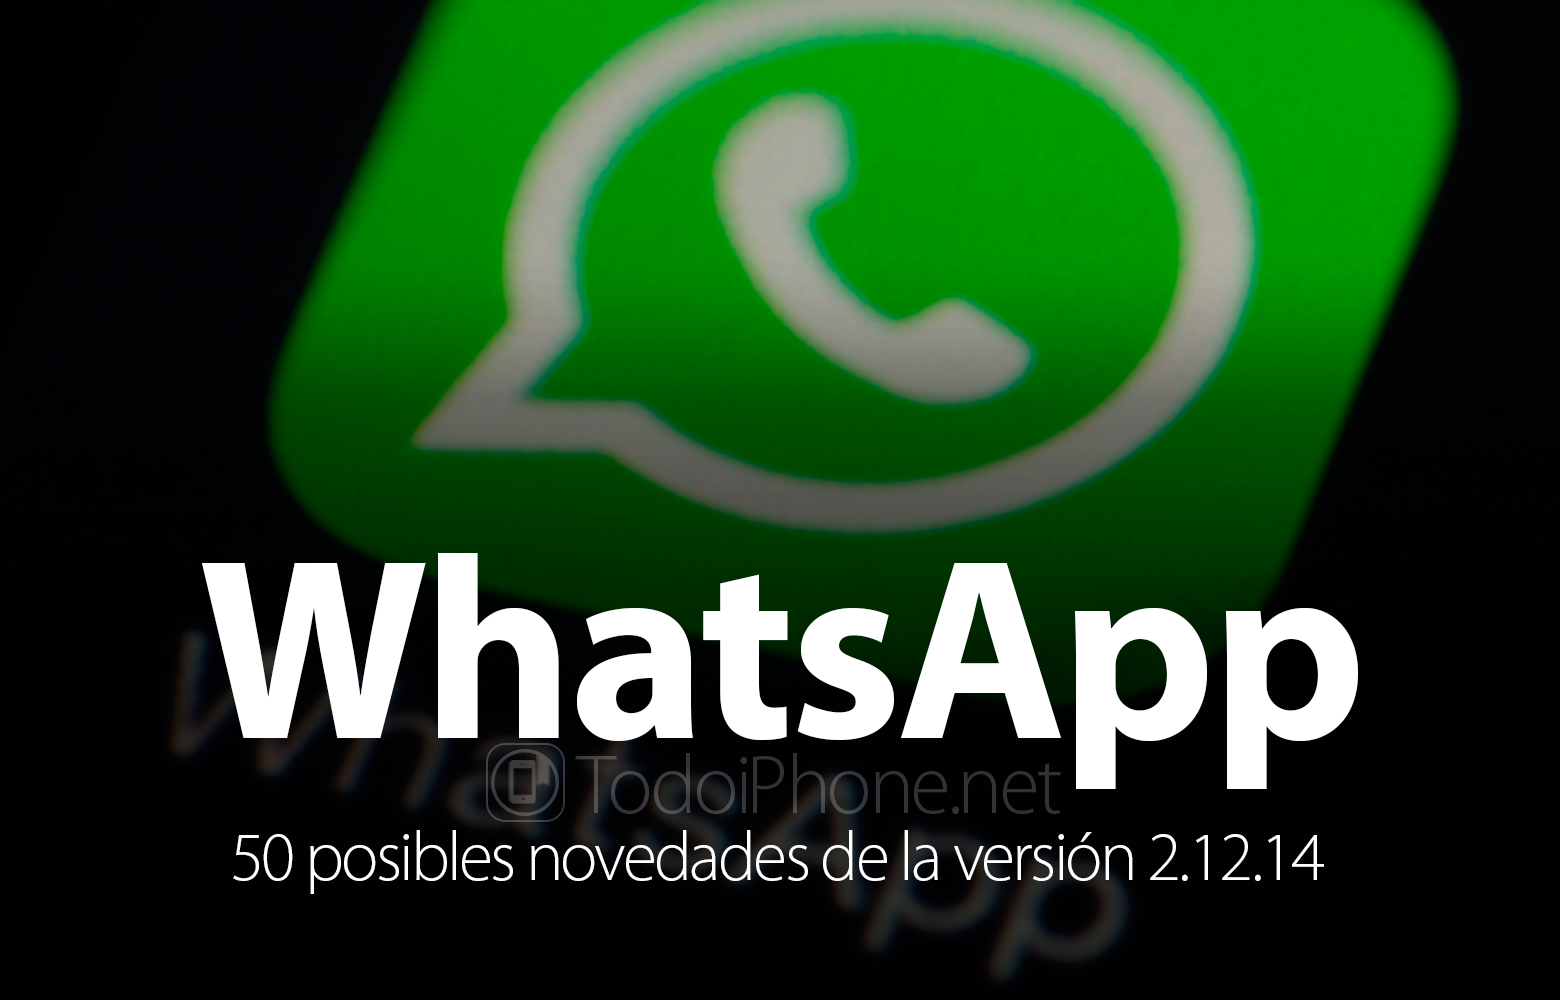 whatsapp-50-novedades-llegaran-version-2-12-14-iphone